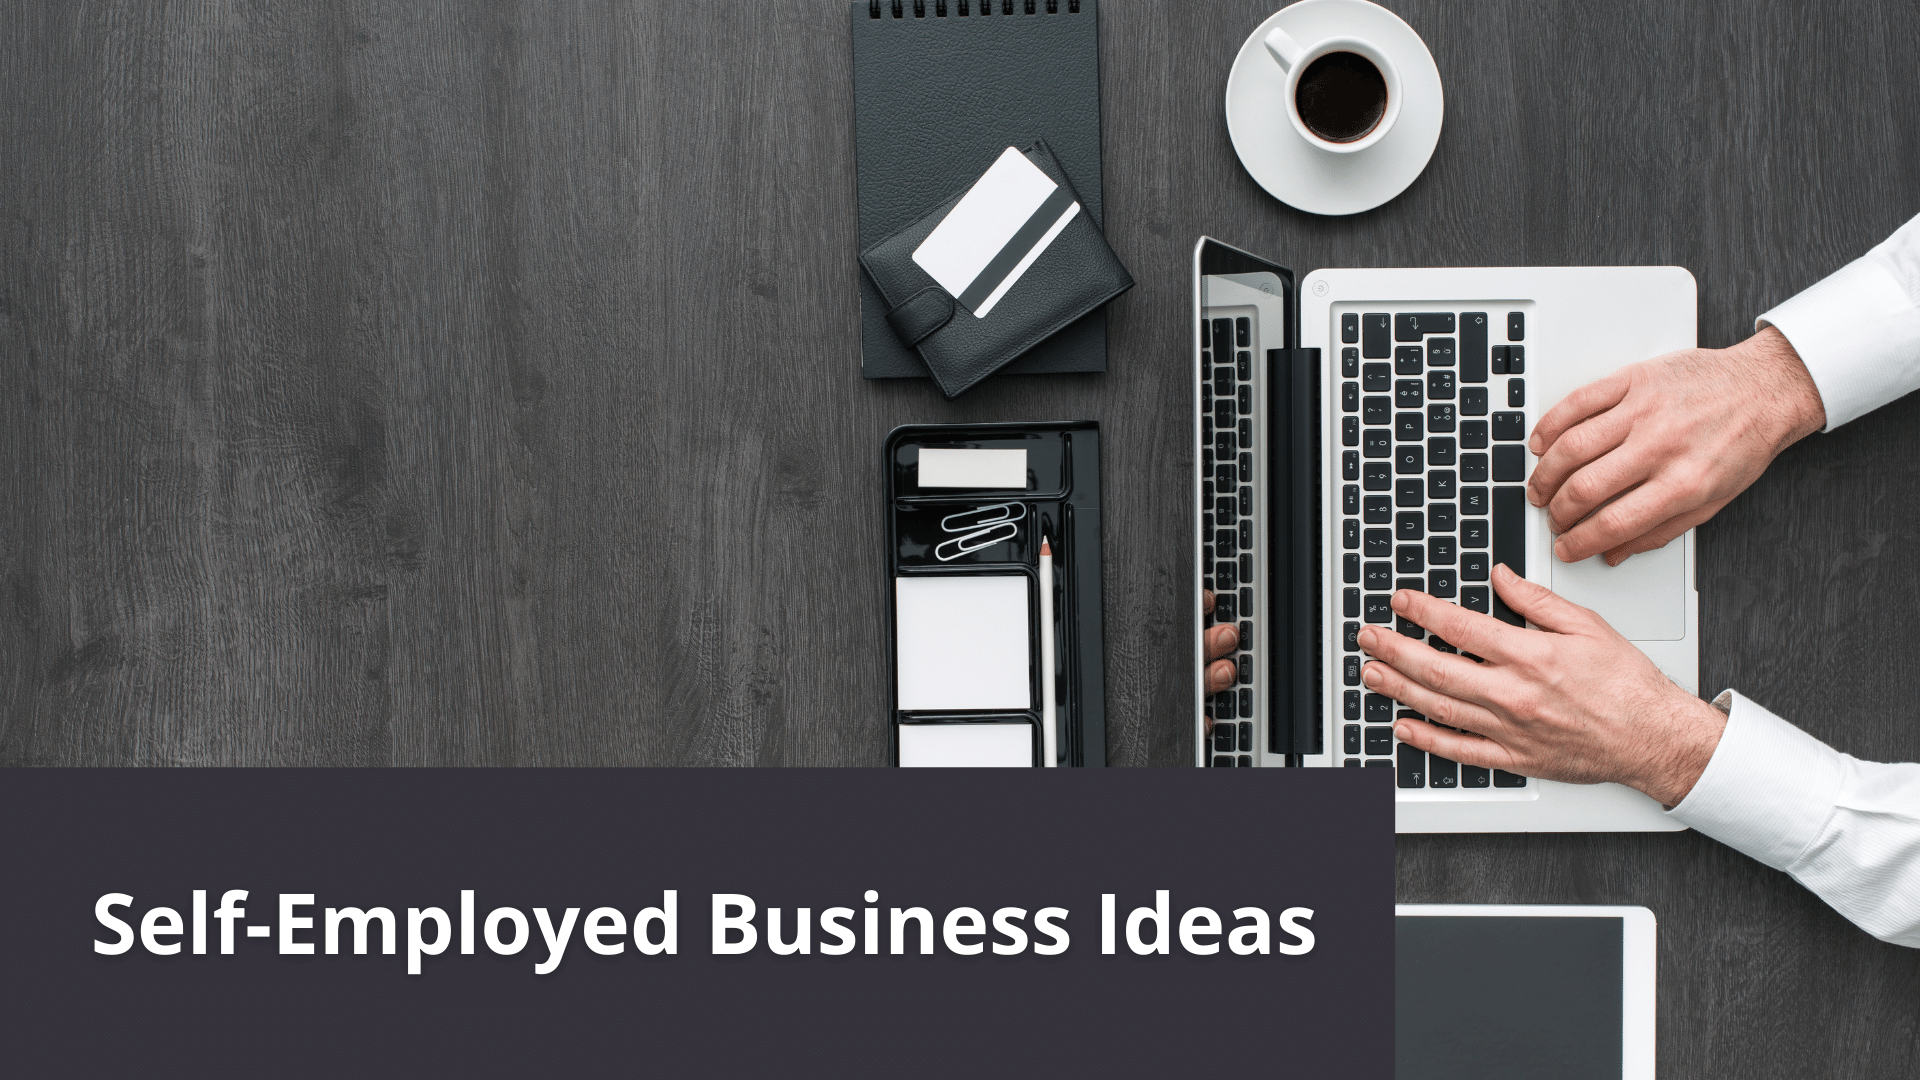 Self-Employed Business Ideas - How to Find One That is Right For You 37